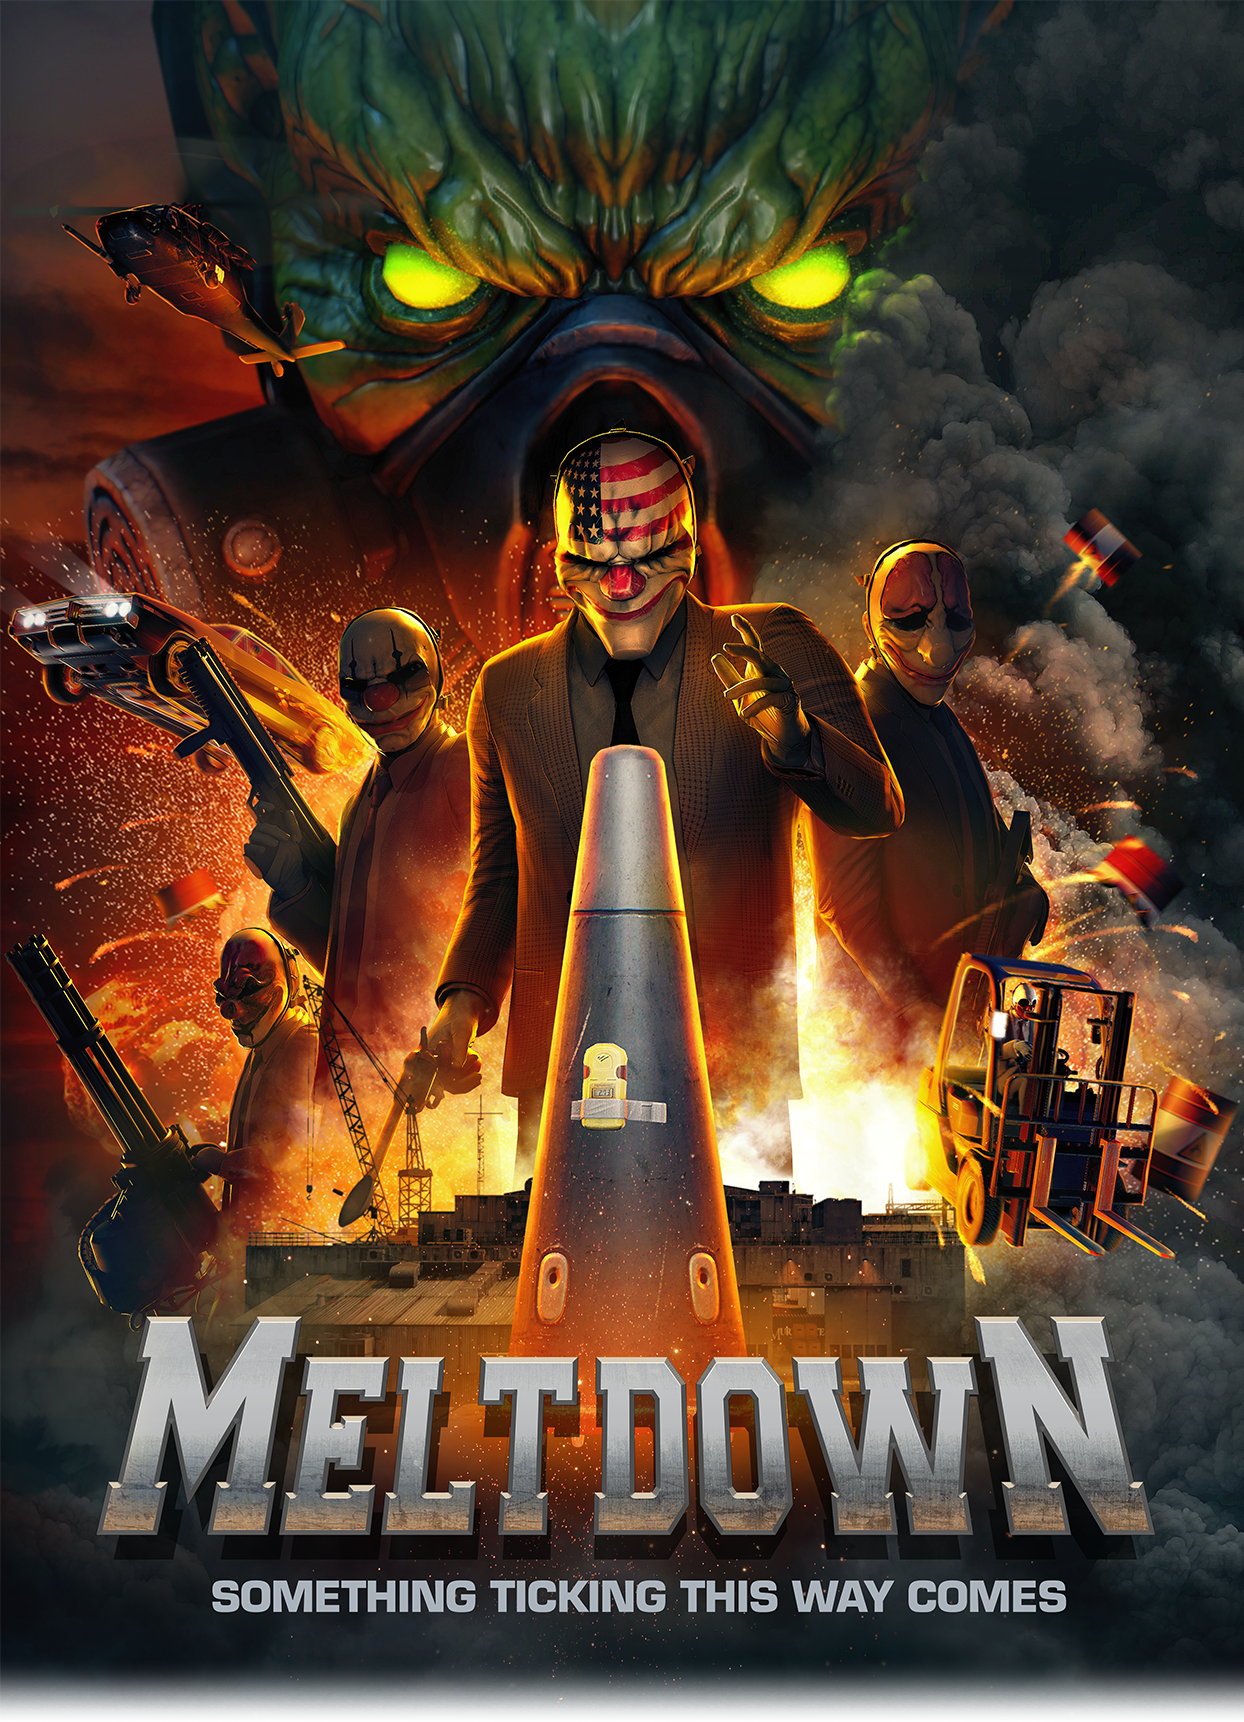 PAYDAY 2 The Meltdown Heist Toggle Background Music Download This Wallpaper As A JPEG 27 MB